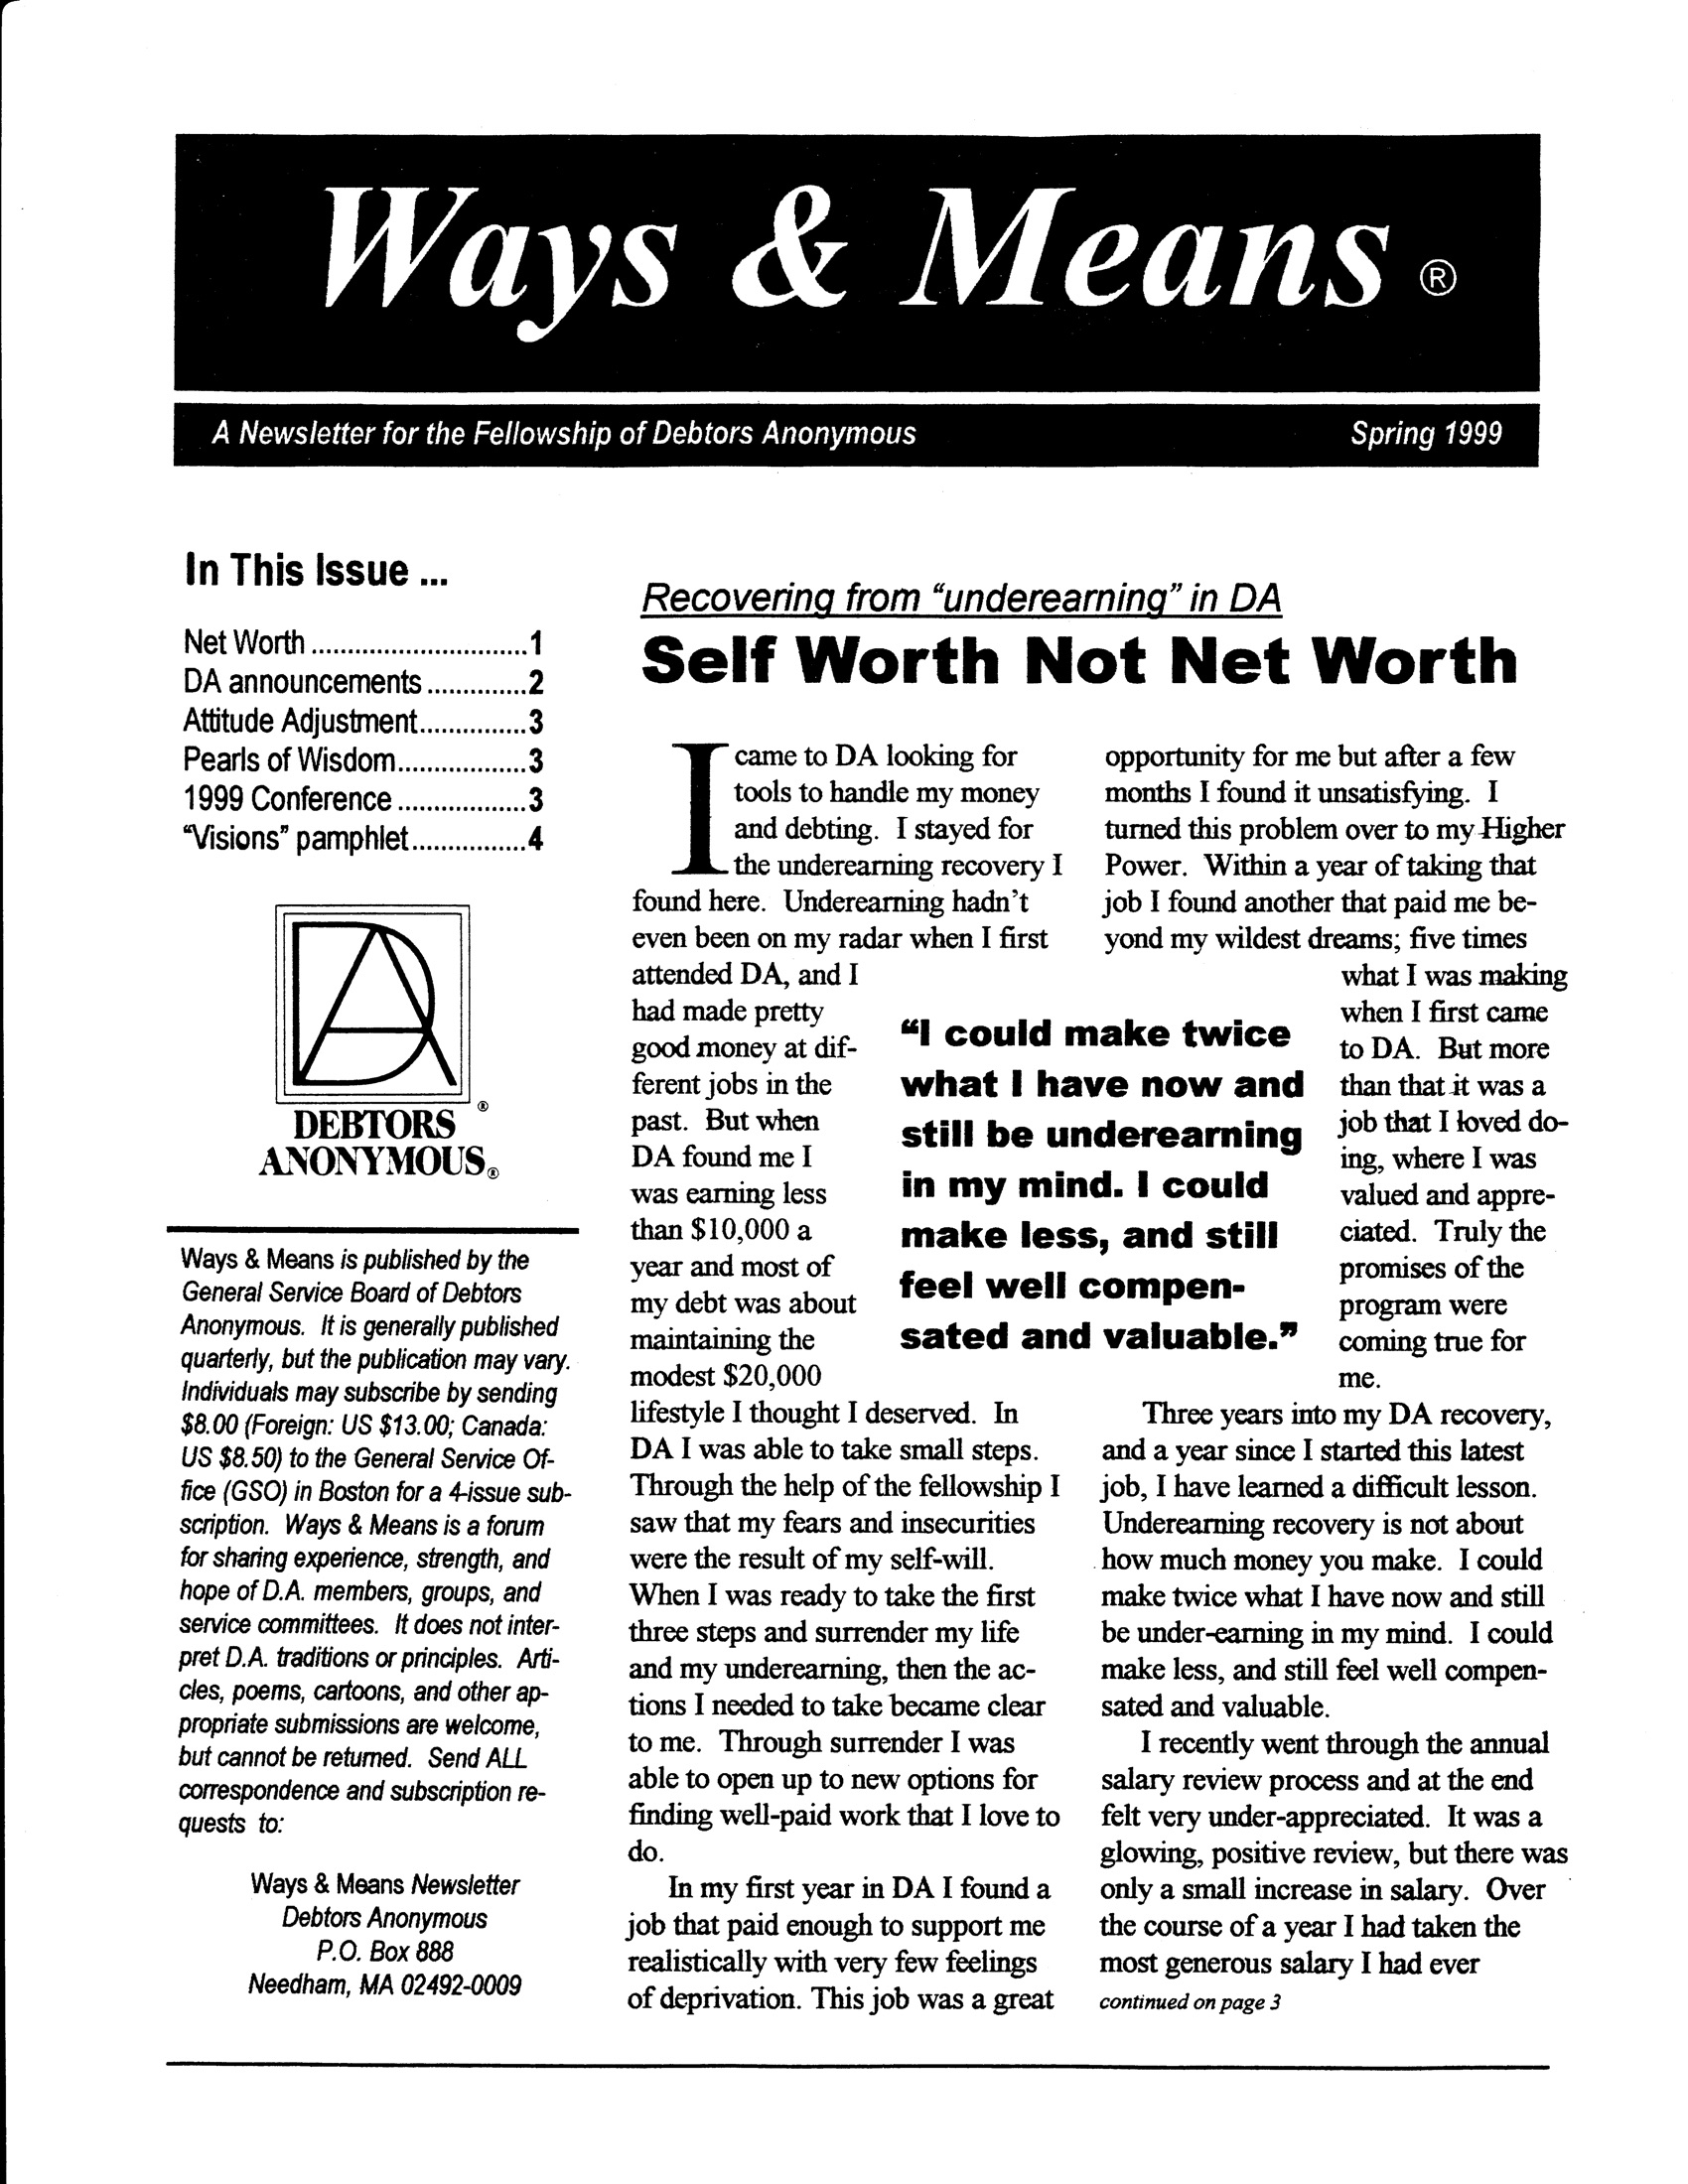 Ways & Means 2nd QTR 1999